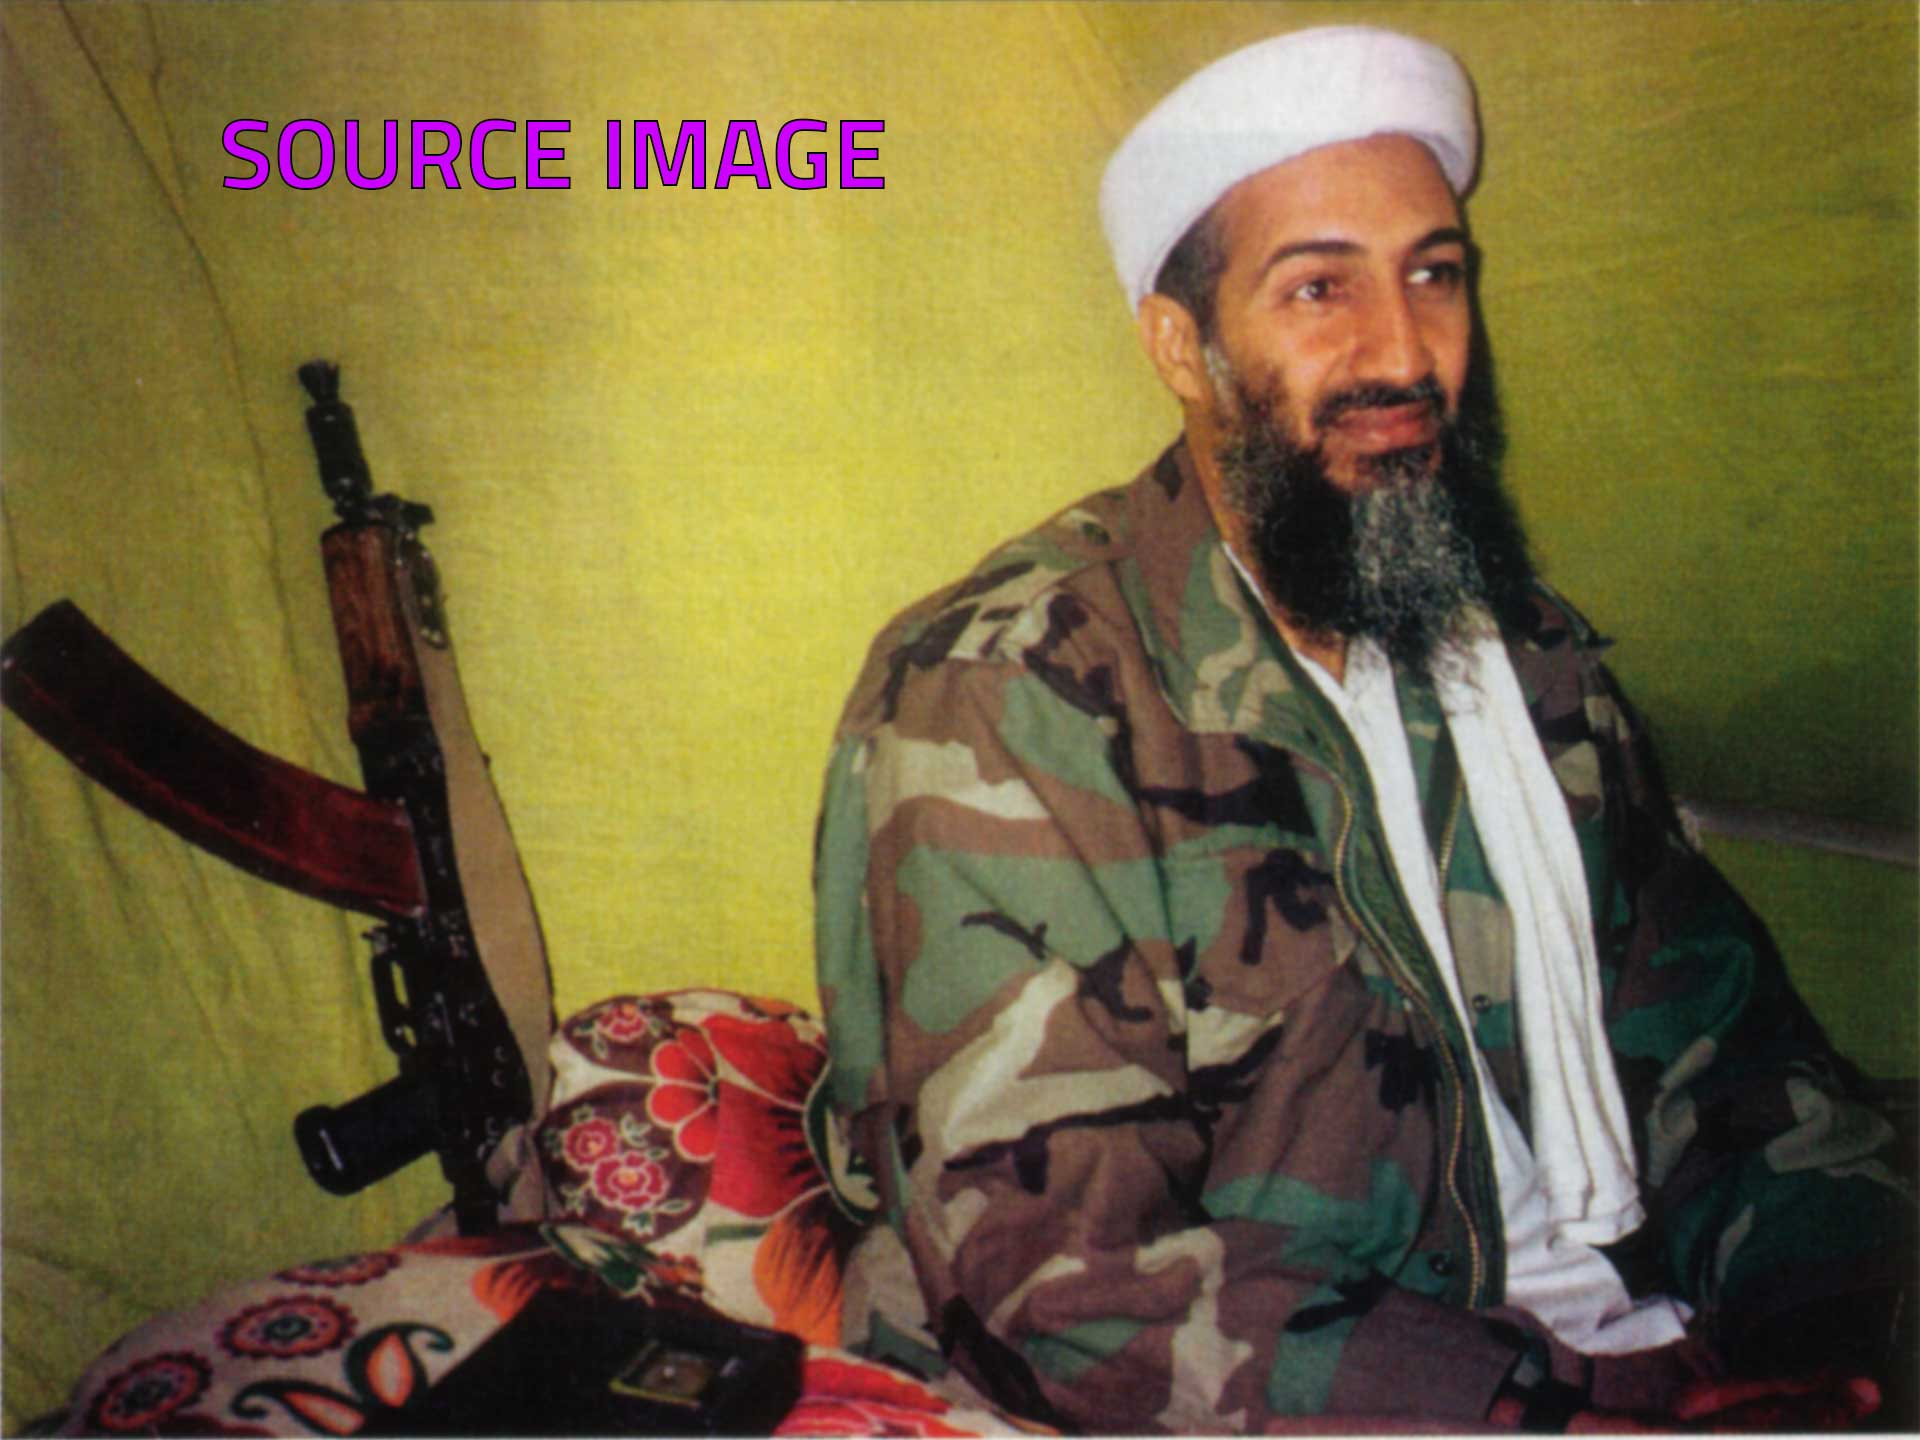 Photorealist painting - Osama - The Biggest Arsehole On The Planet - Source image